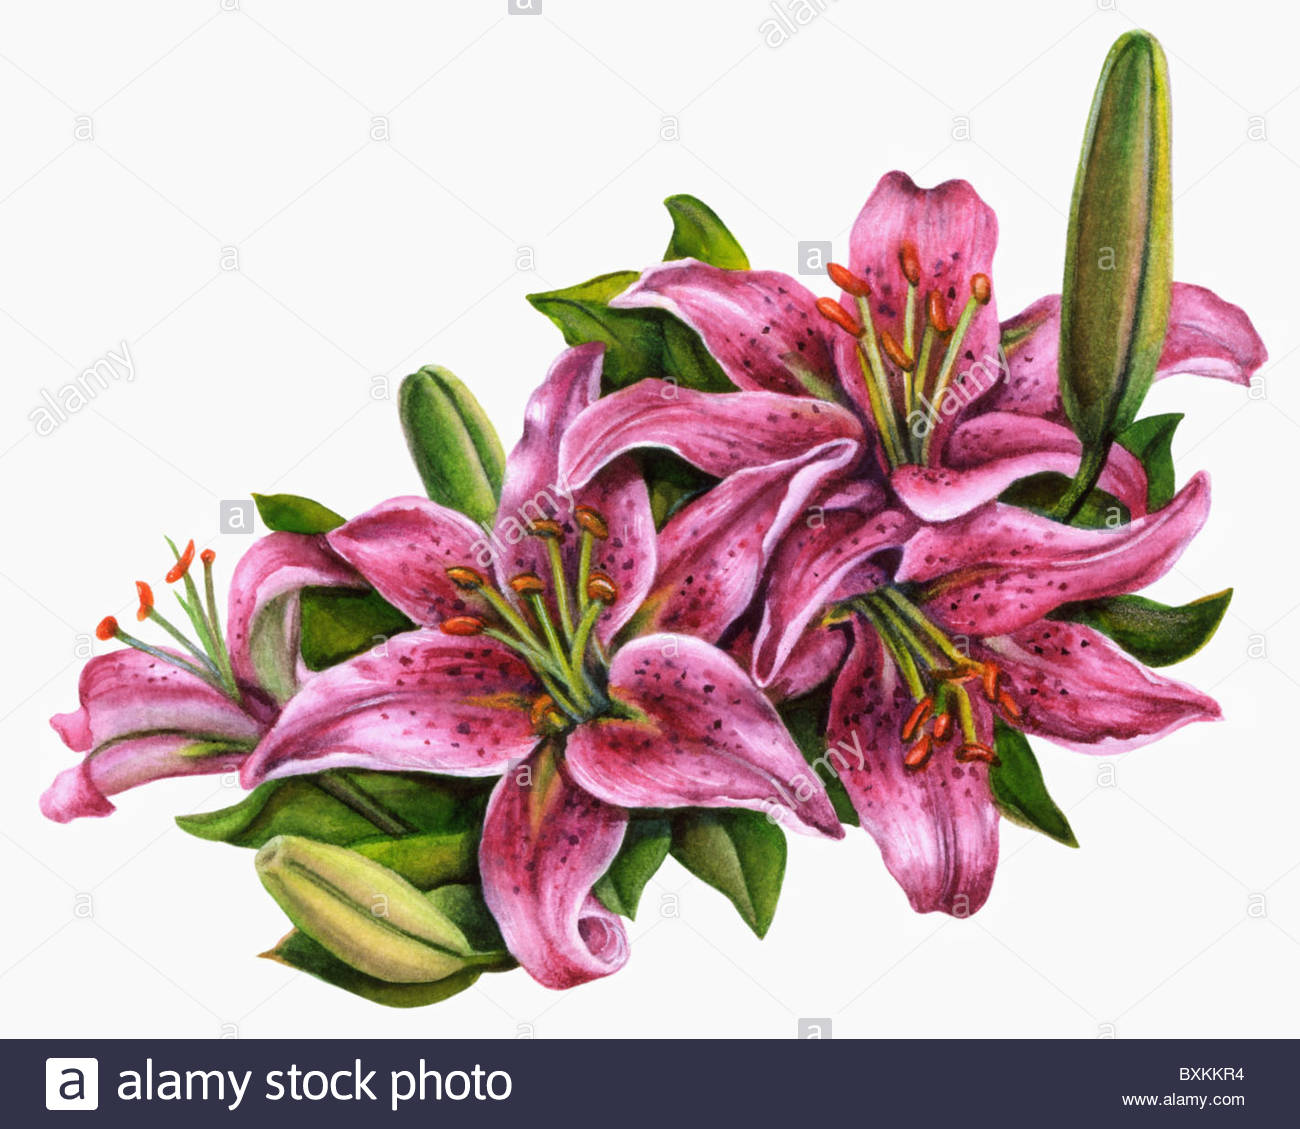 tiger lillies stock photo, royalty free image   alamy, Beautiful flower